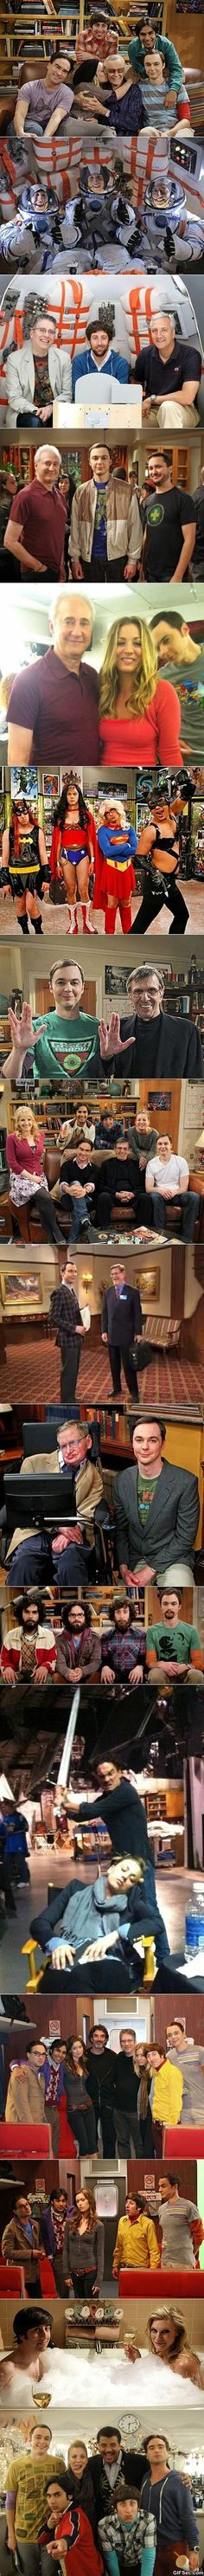 Its good to be in The Big Bang Theory